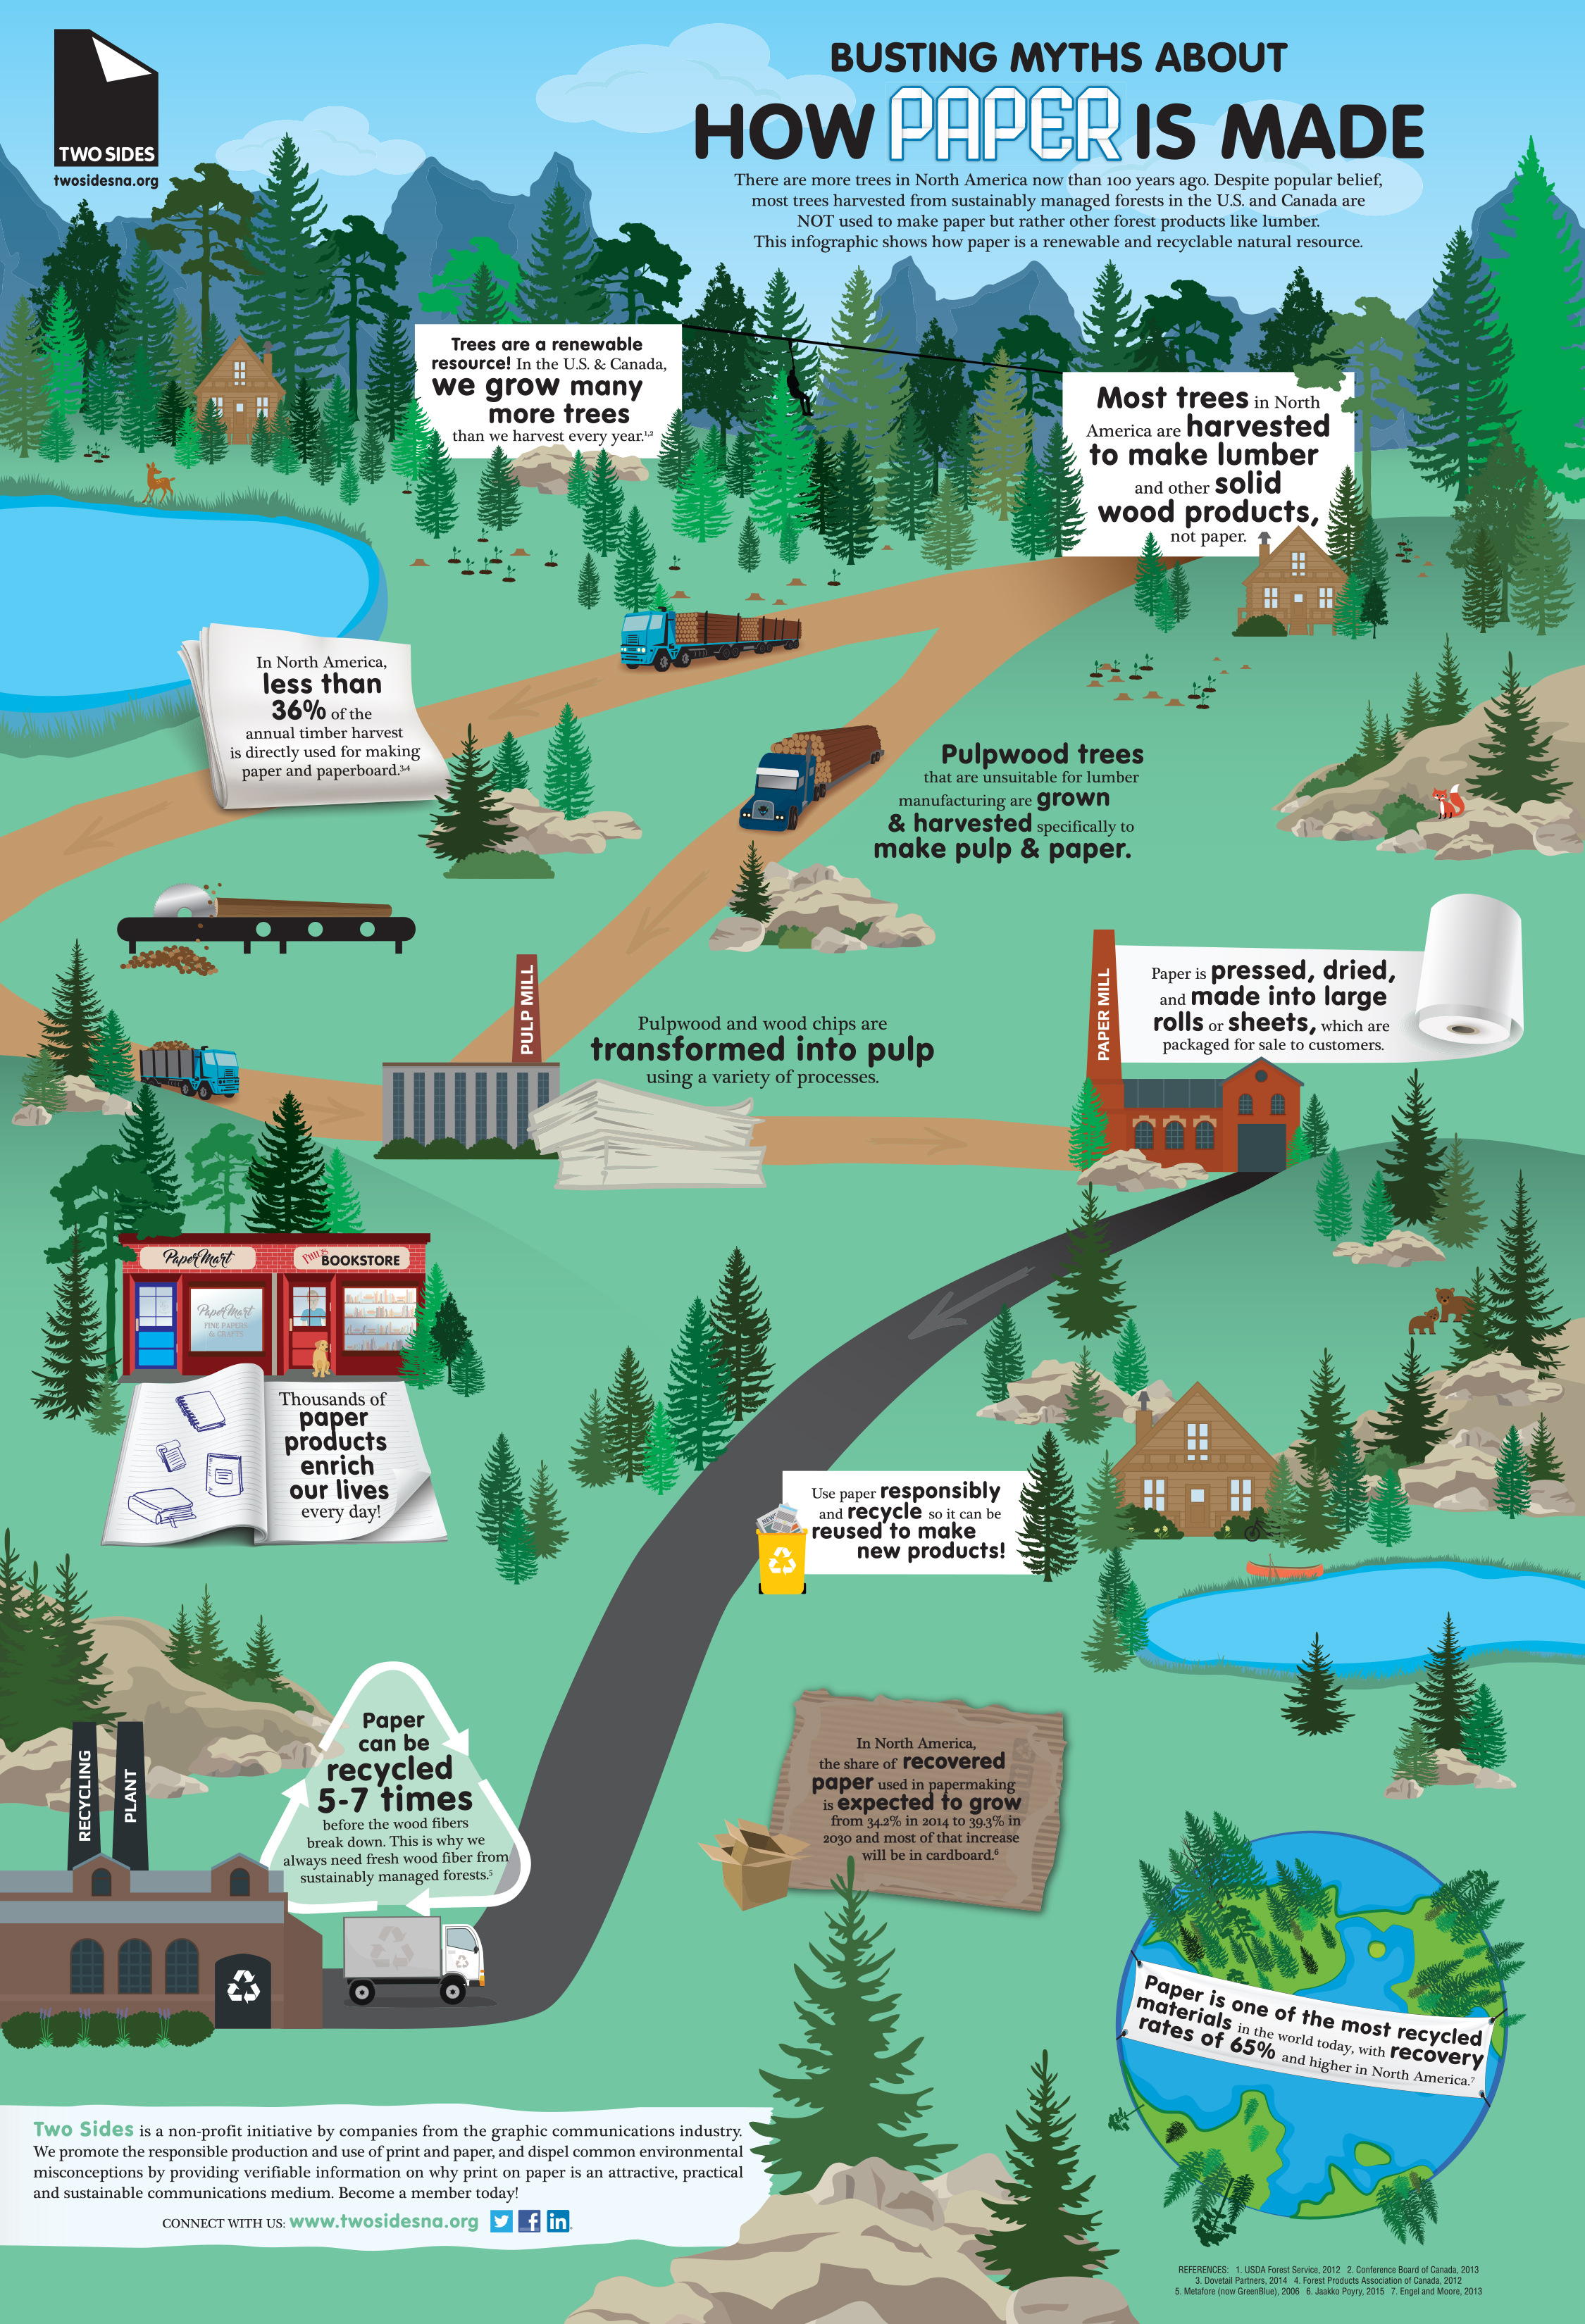 Two Sides New Infographic Celebrates Earth Day by Busting Myths About How Paper is Made